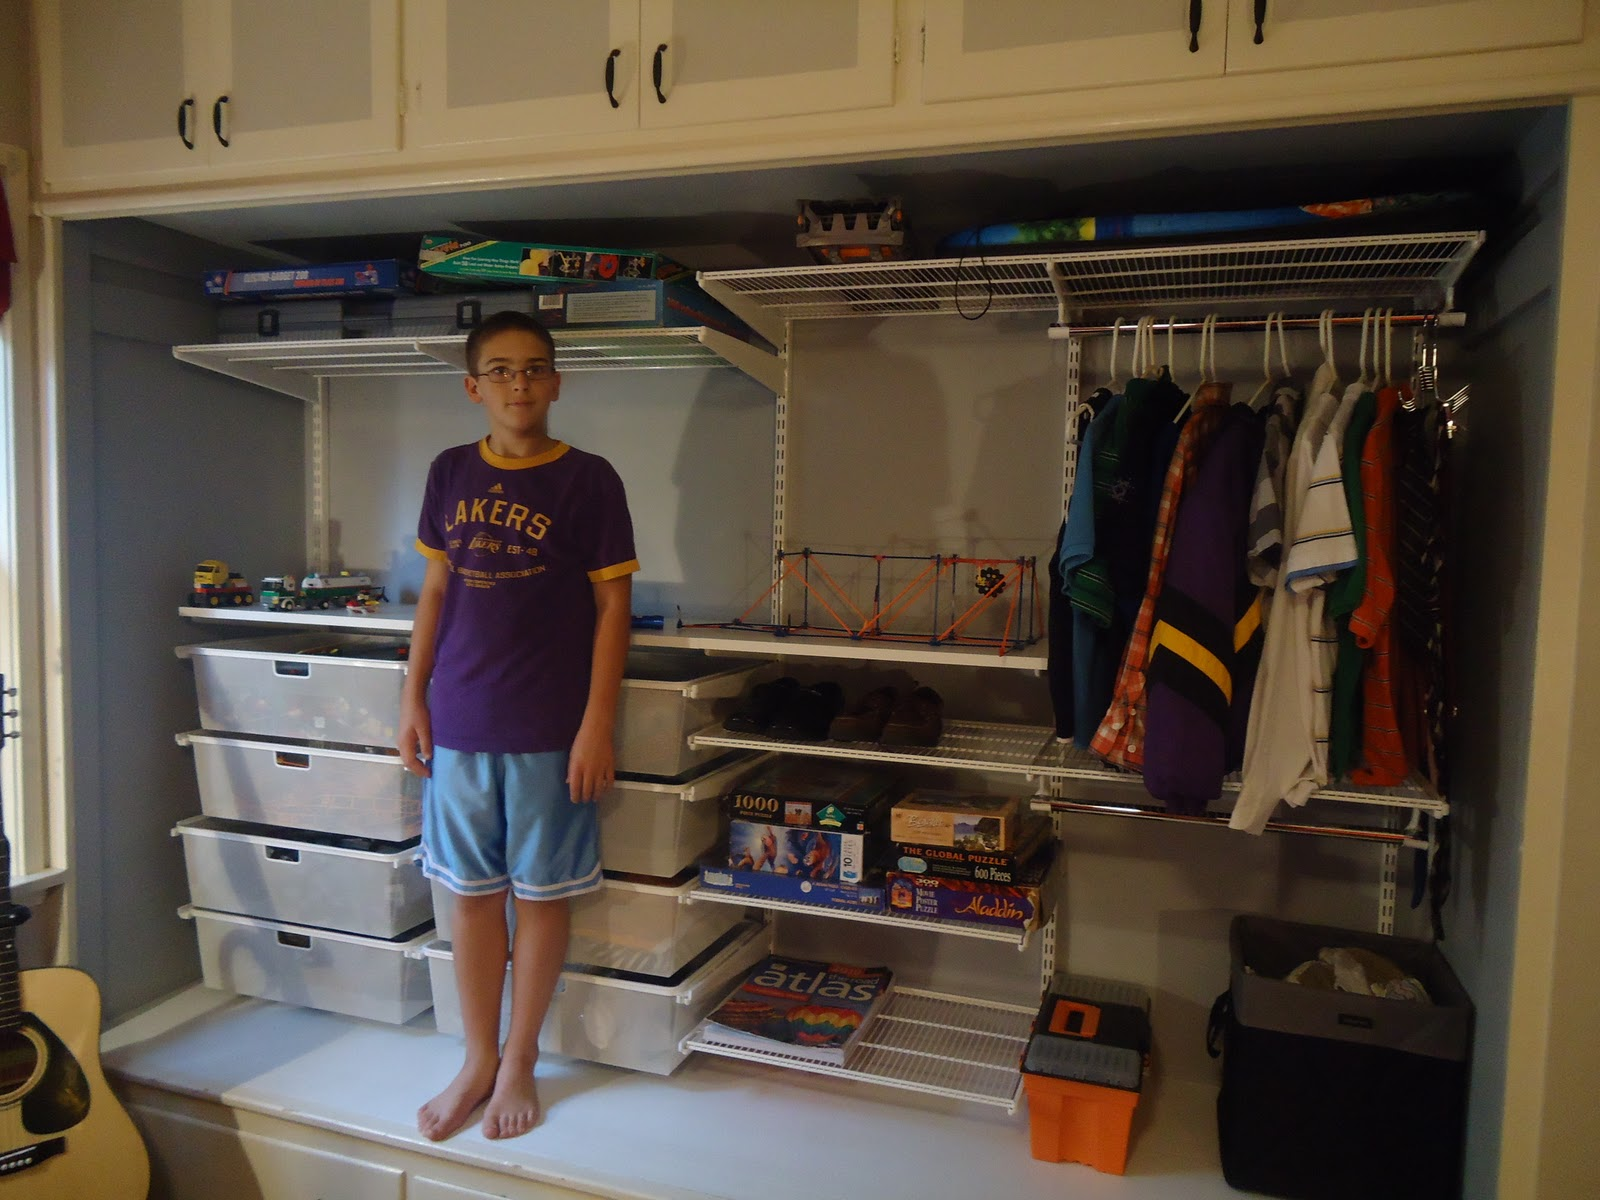 Organizing Made Fun: It's that time again...new closet system!